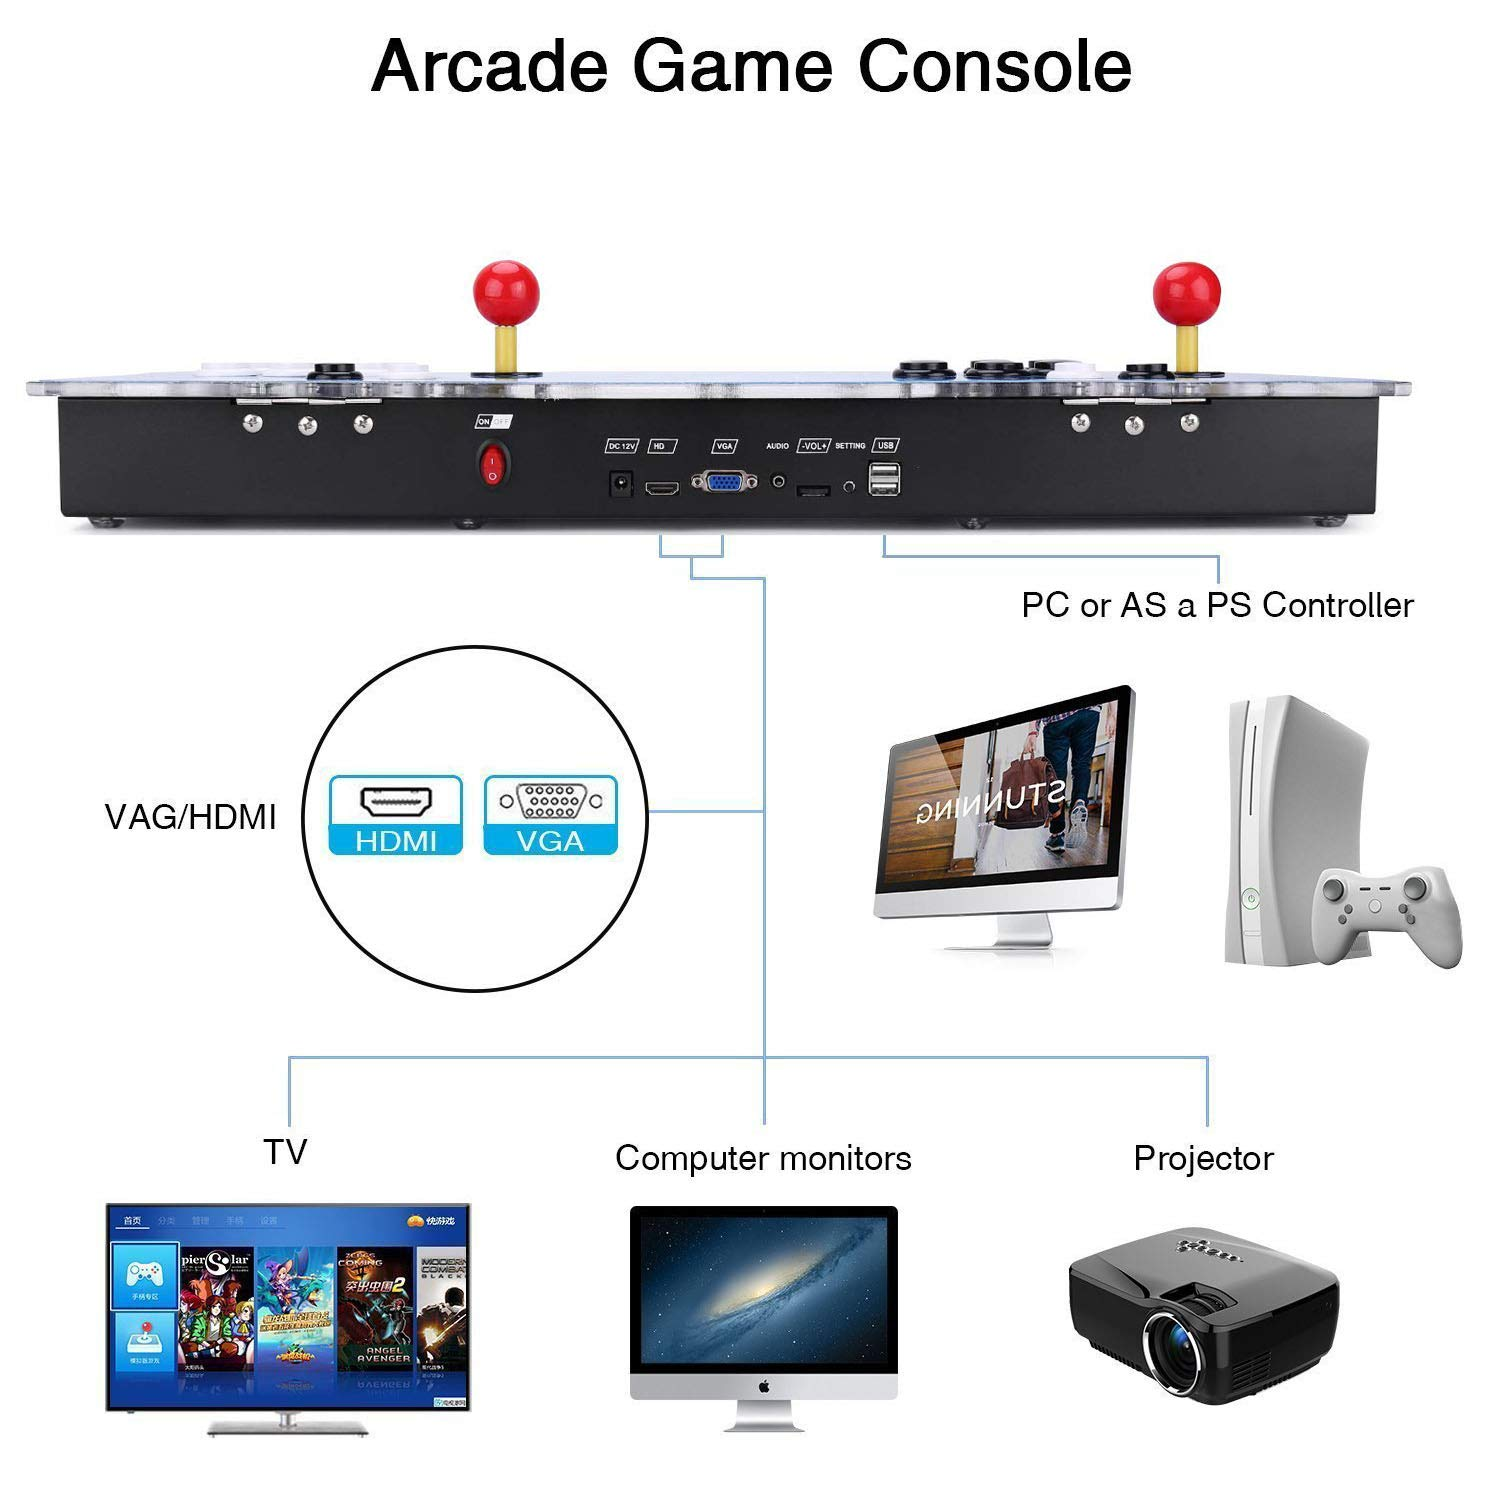 Pandora Treasure 3D 2260 Retro Home Arcade Game Console | Support 3D Games | Add More Games | Support 4 Players | Full HD (1920x1080) Video | 2 Player Game Controls | HDMI/VGA/USB/AUX Audio Output by HAAMIIQII (Image #2)